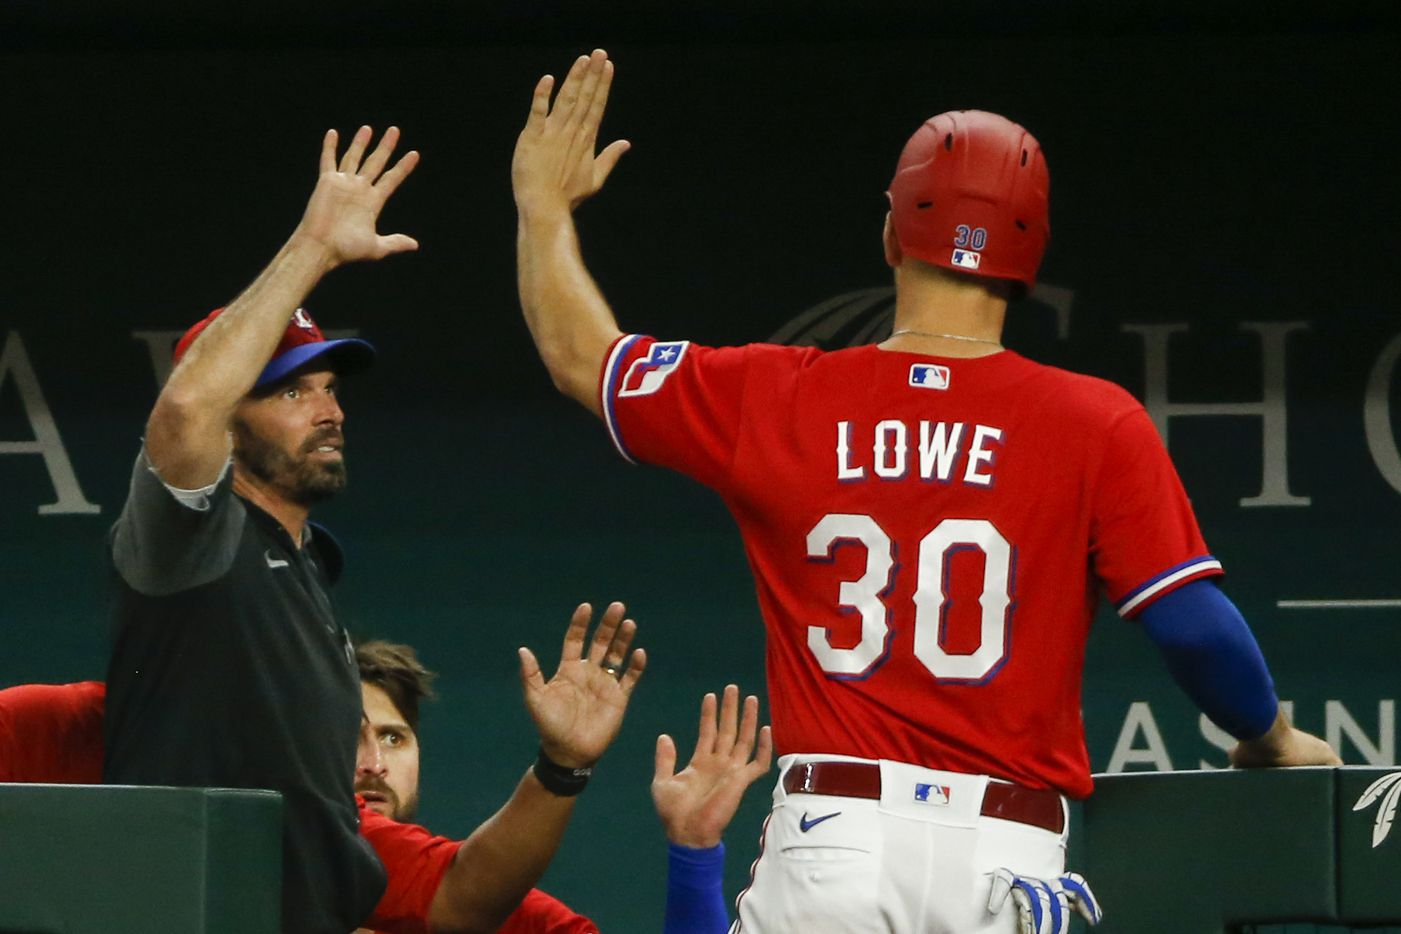 Texas Rangers first baseman Nate Lowe (30) high-fives Texas Rangers manager Chris Woodward (8) after scoring a run during the fourth inning against the Kansas City Royals at Globe Life Field on Friday, June 25, 2021, in Arlington. (Elias Valverde II/The Dallas Morning News)